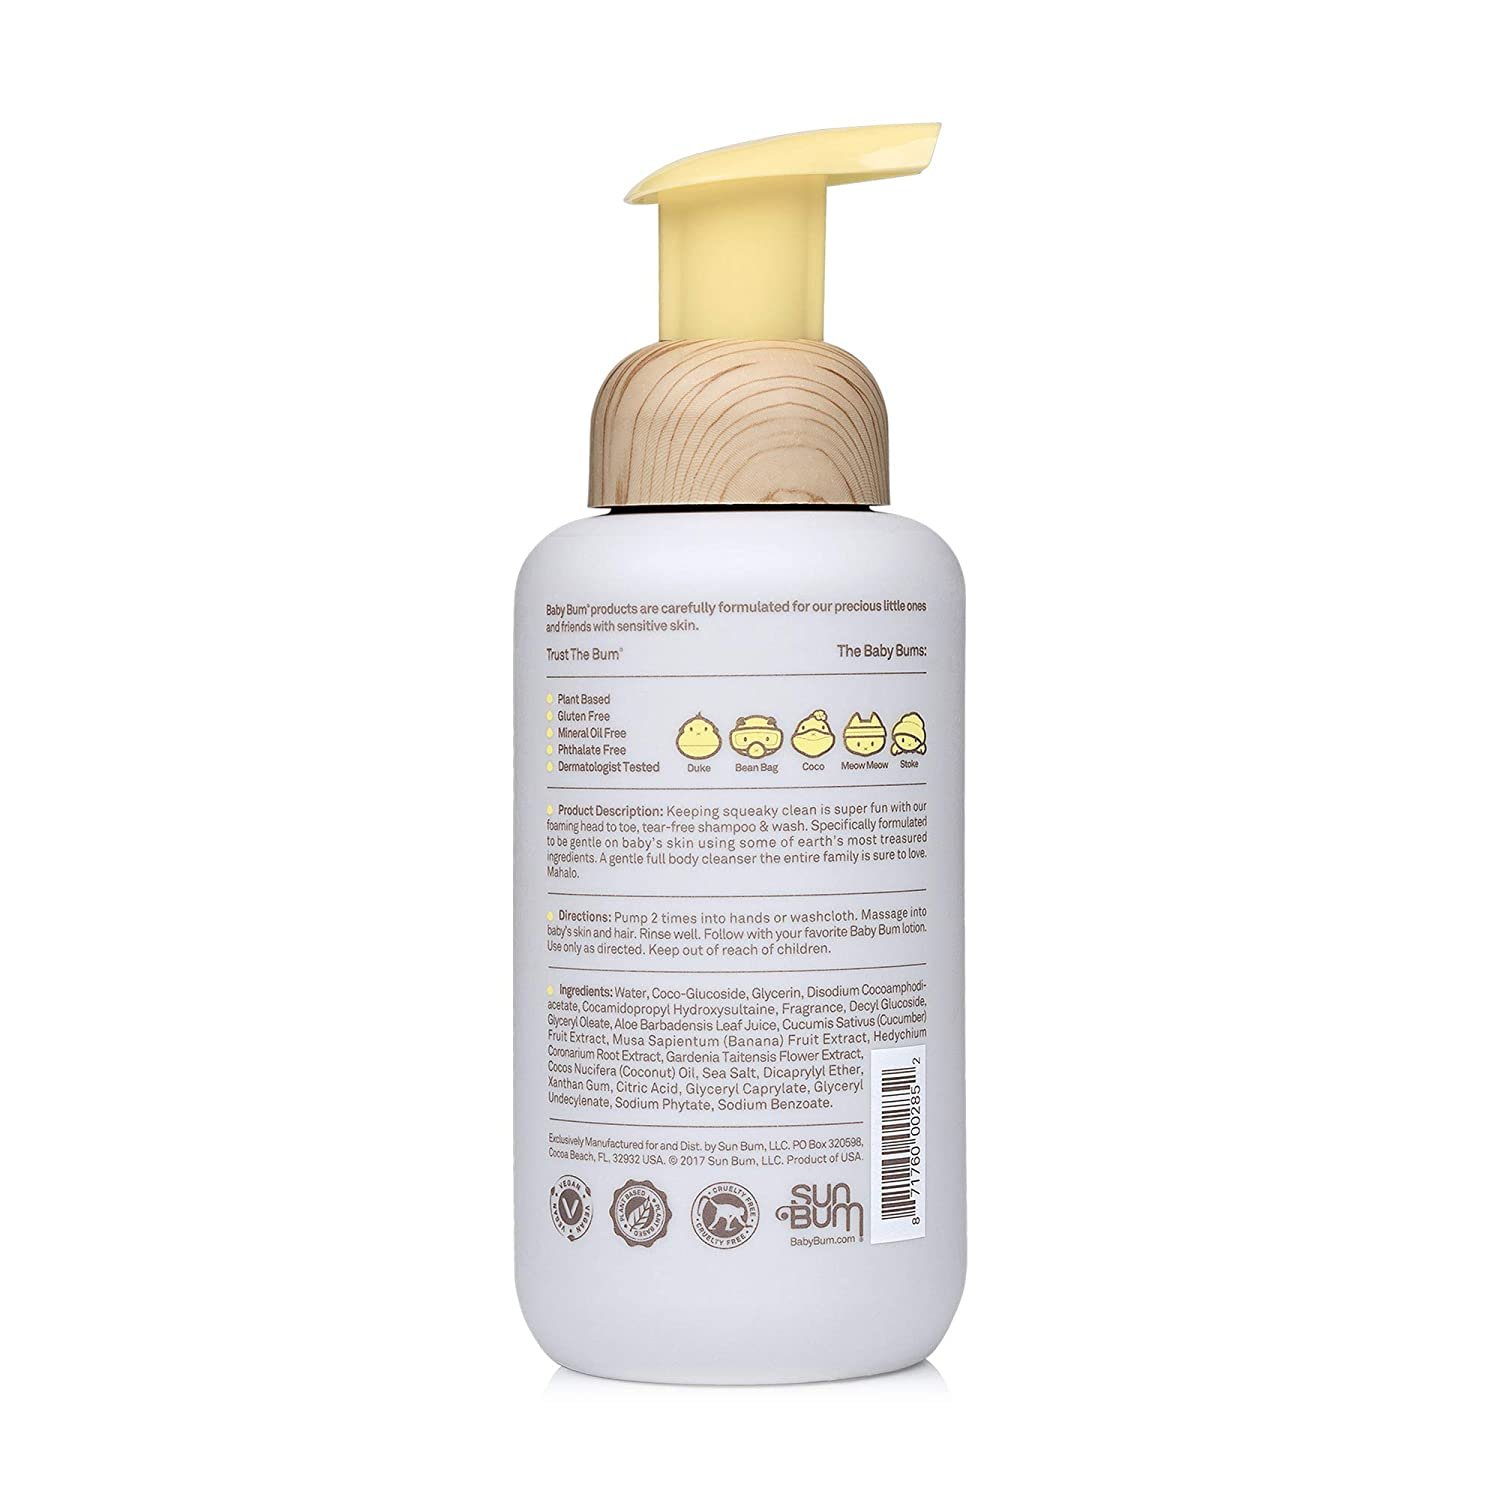 Baby Bum Shampoo & Wash   Tear Free Foaming Soap for Sensitive Skin with Nourishing Coconut Oil   Natural Fragrance   Gluten Free and Vegan   12 FL OZ